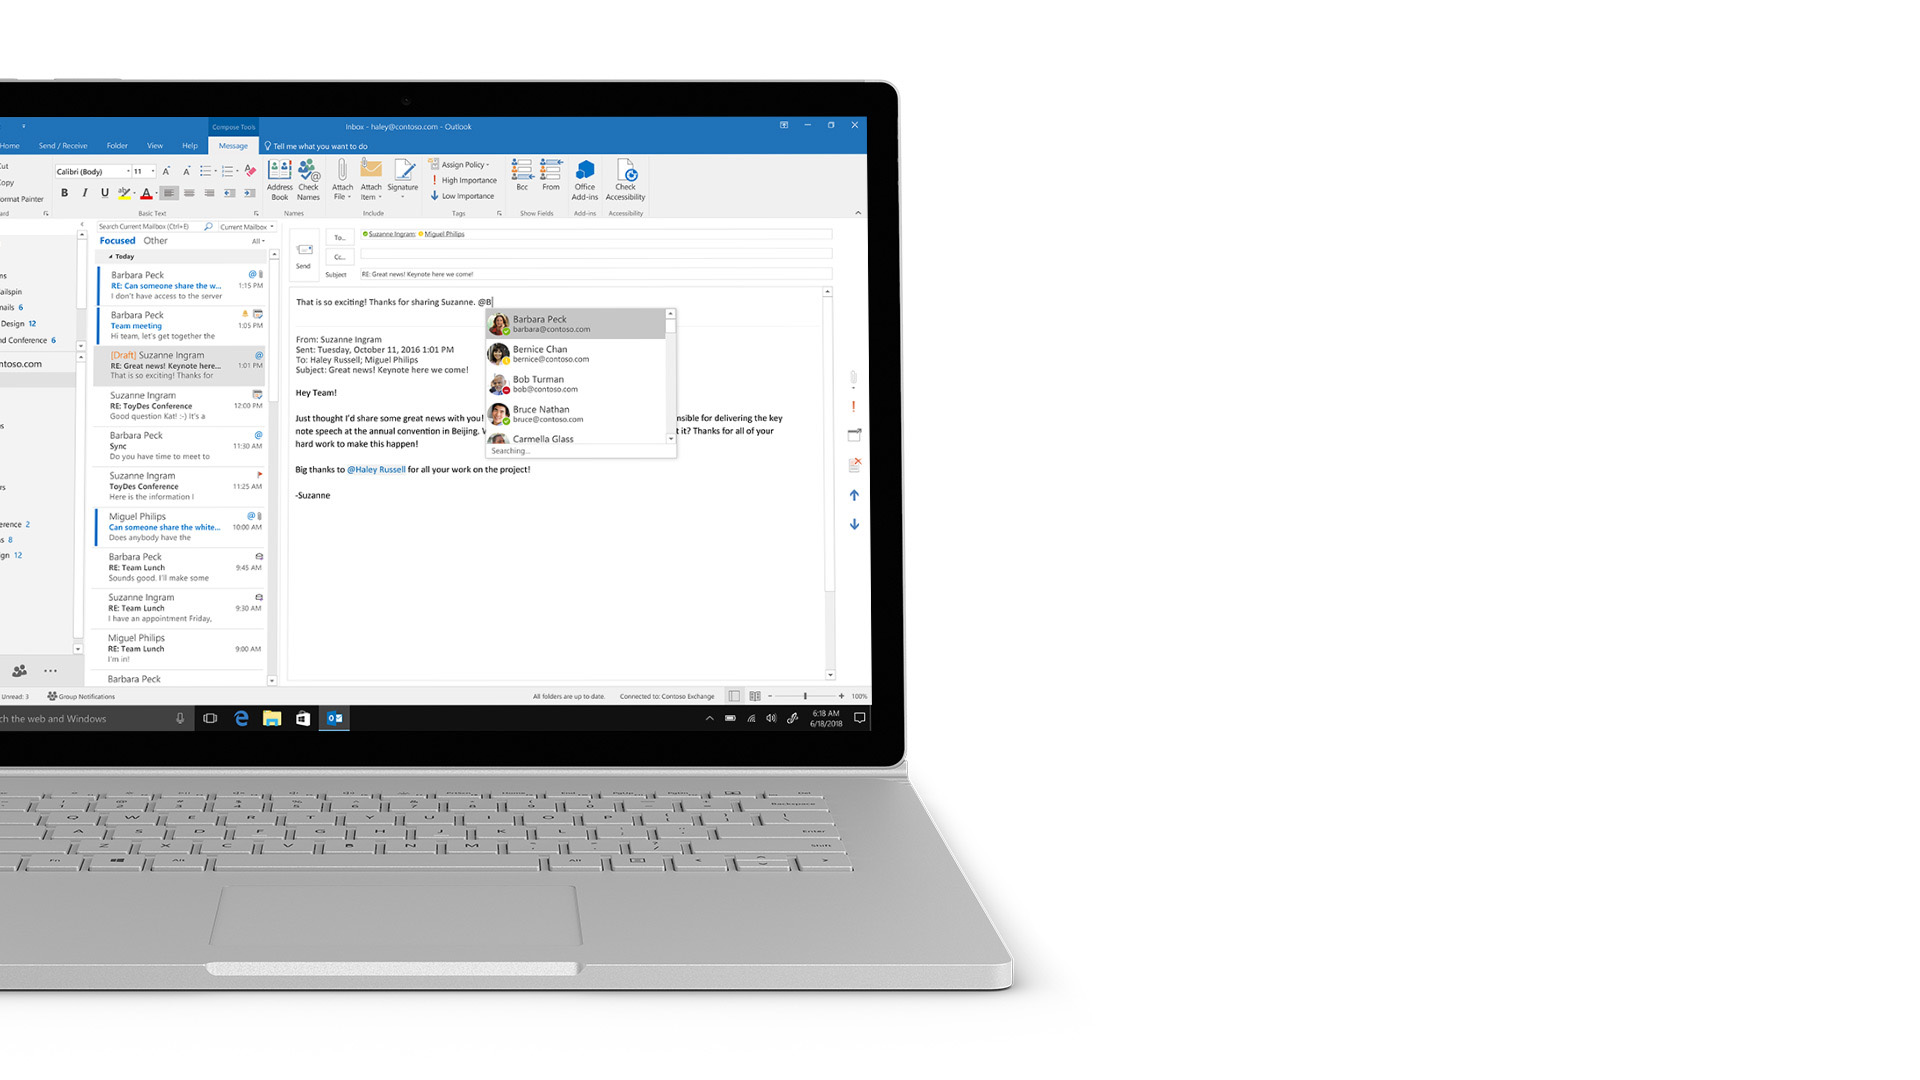 Surface 上的 Outlook 螢幕擷取畫面。